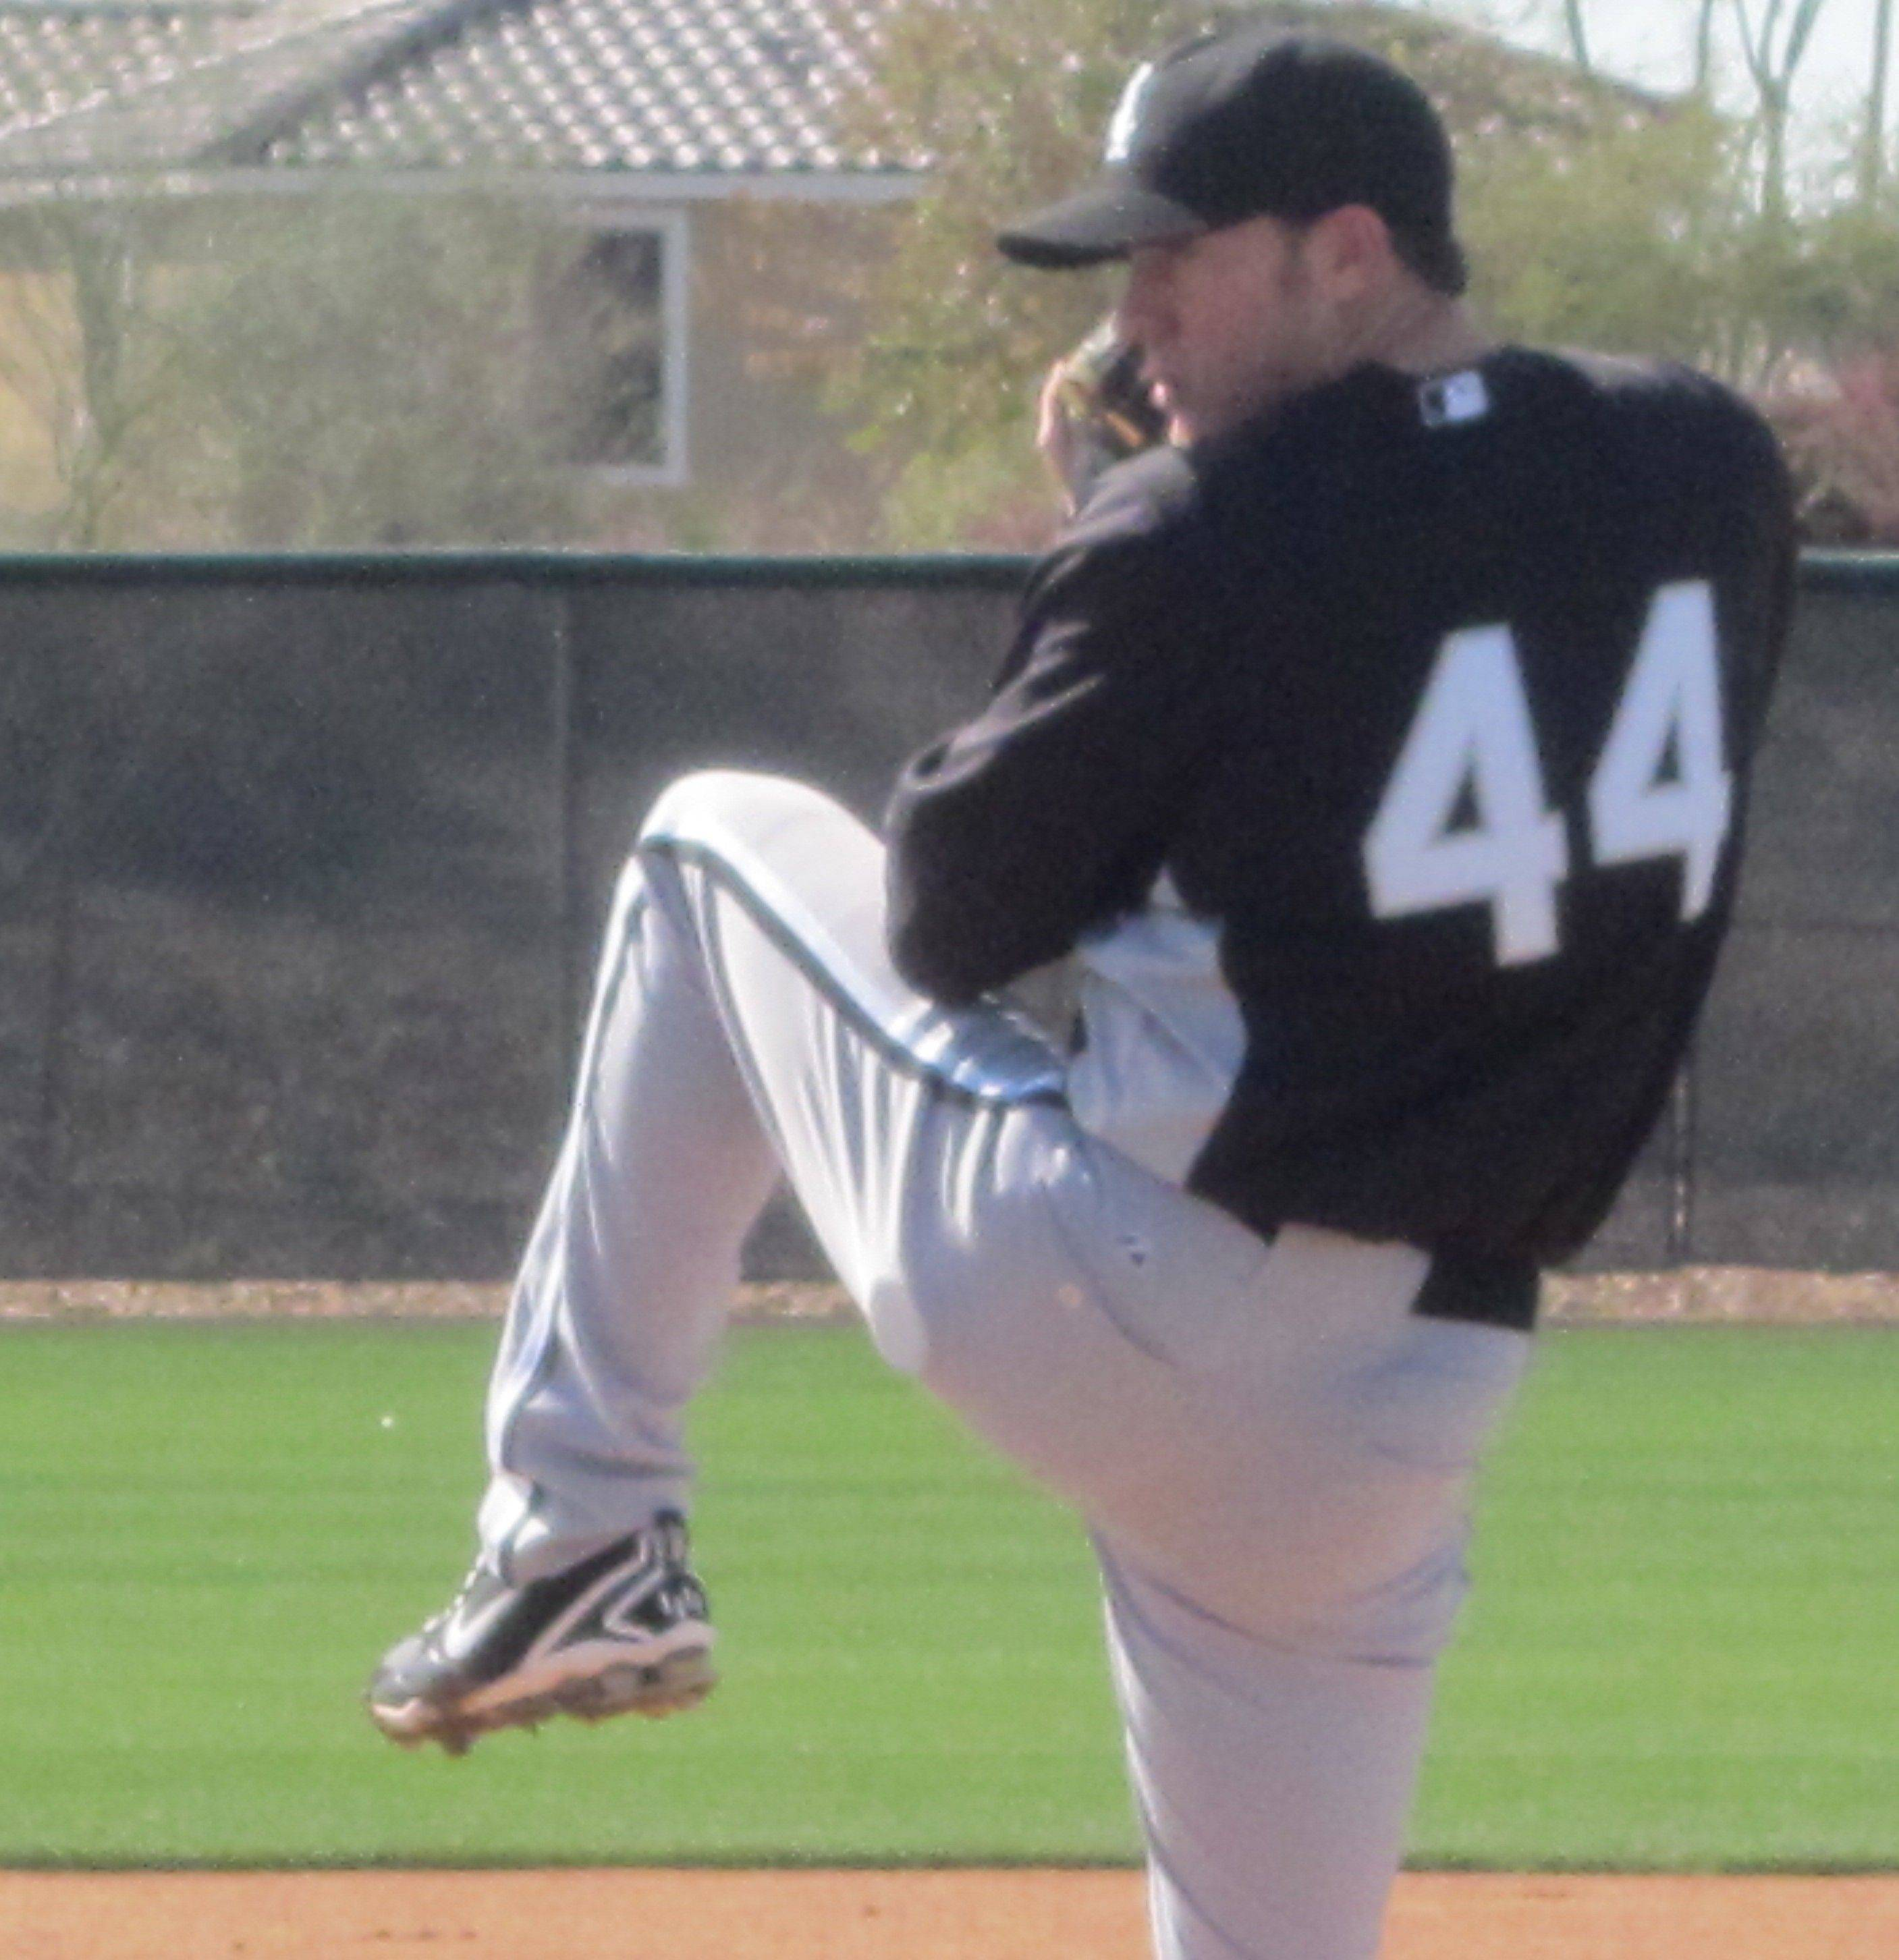 Jake Peavy gets in sme work Monday at the White Sox training facilities in Glendale, Ariz.